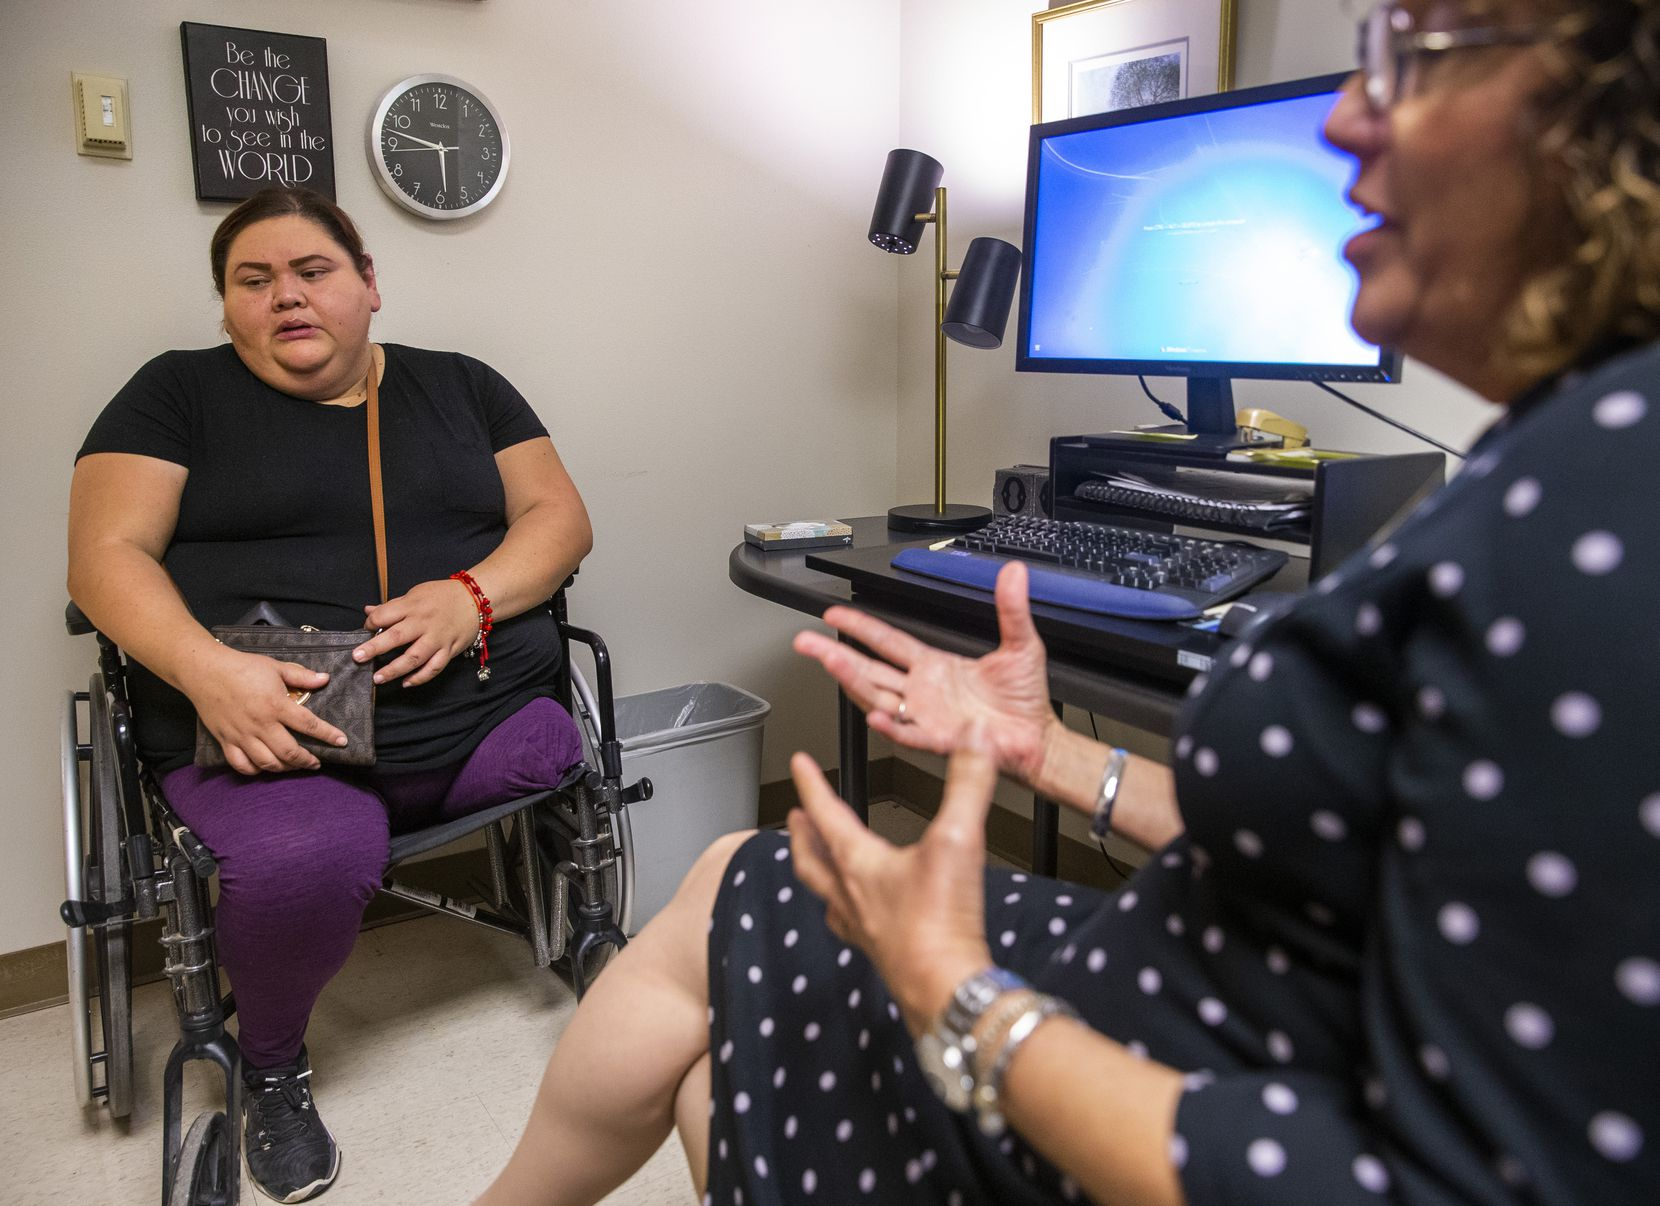 Guadalupe Vergara, 40, from Oak Cliff listens to Ana Castellanos talk about her experience counseling Vergara at the mental health hub of the deHaro-Saldivar Health Center in Dallas. Vergara sought counseling after she received a double amputation on her left leg last year.